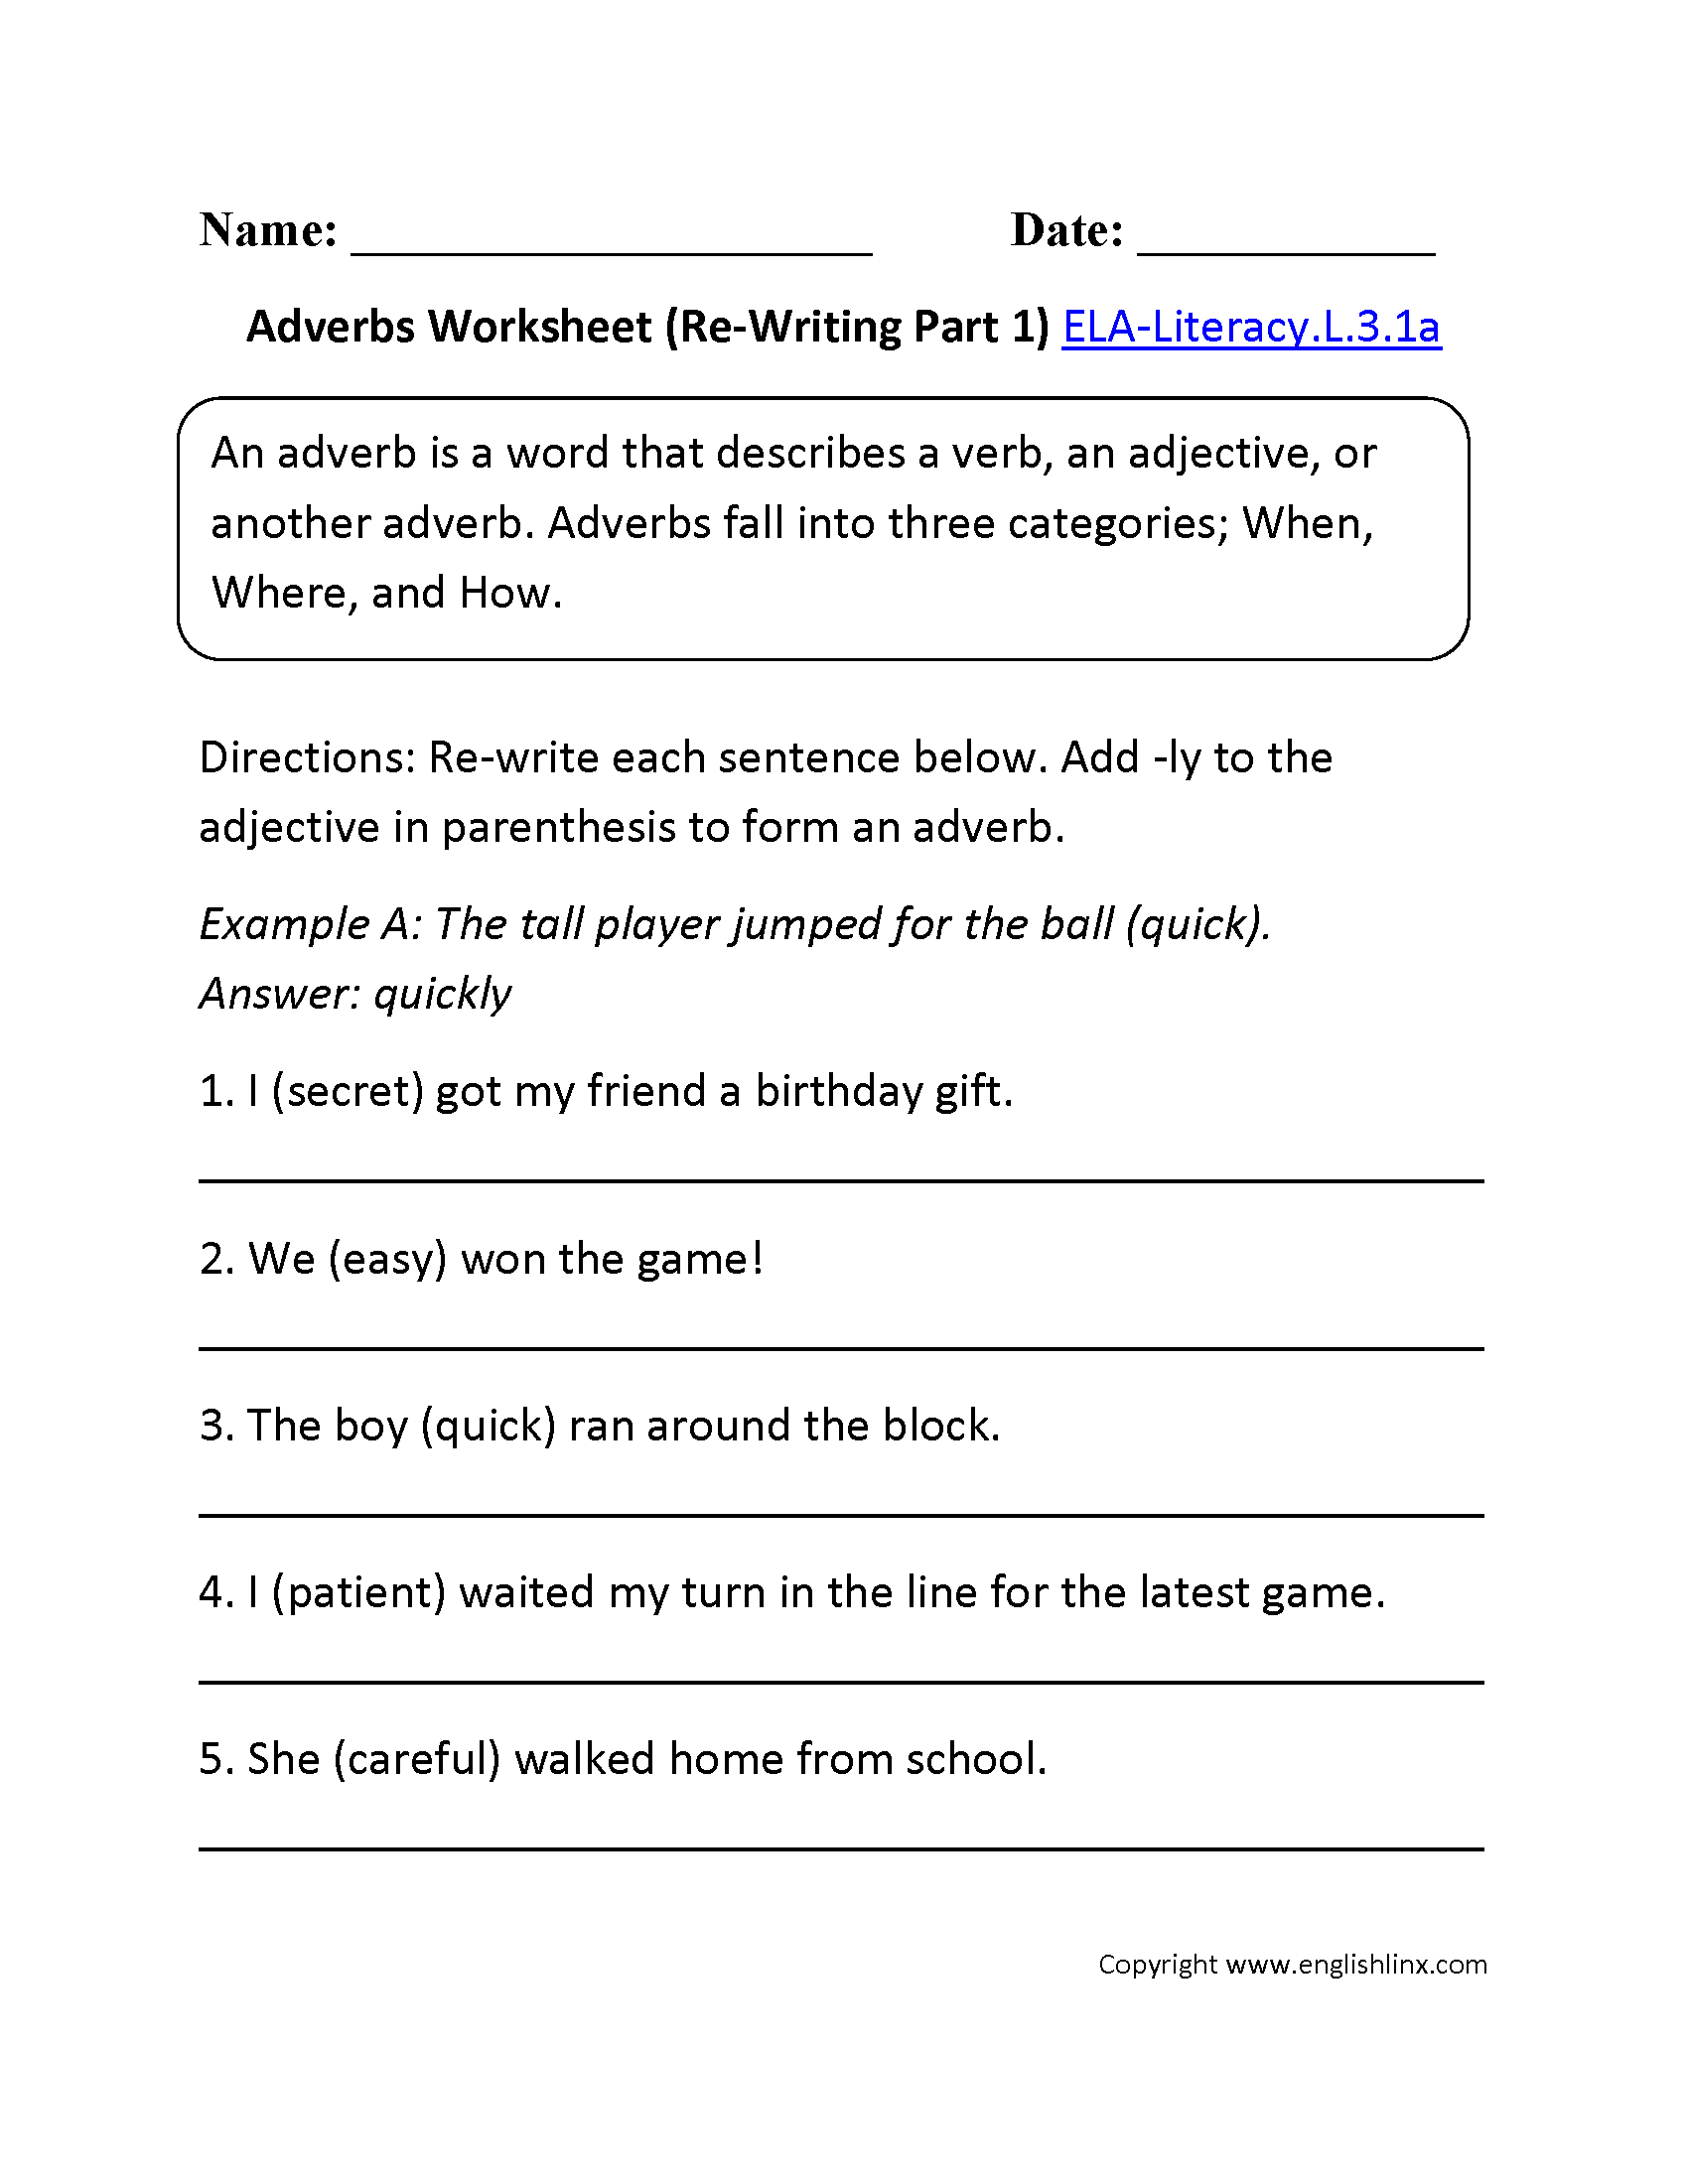 Adverbs Worksheet 2 L 3 1